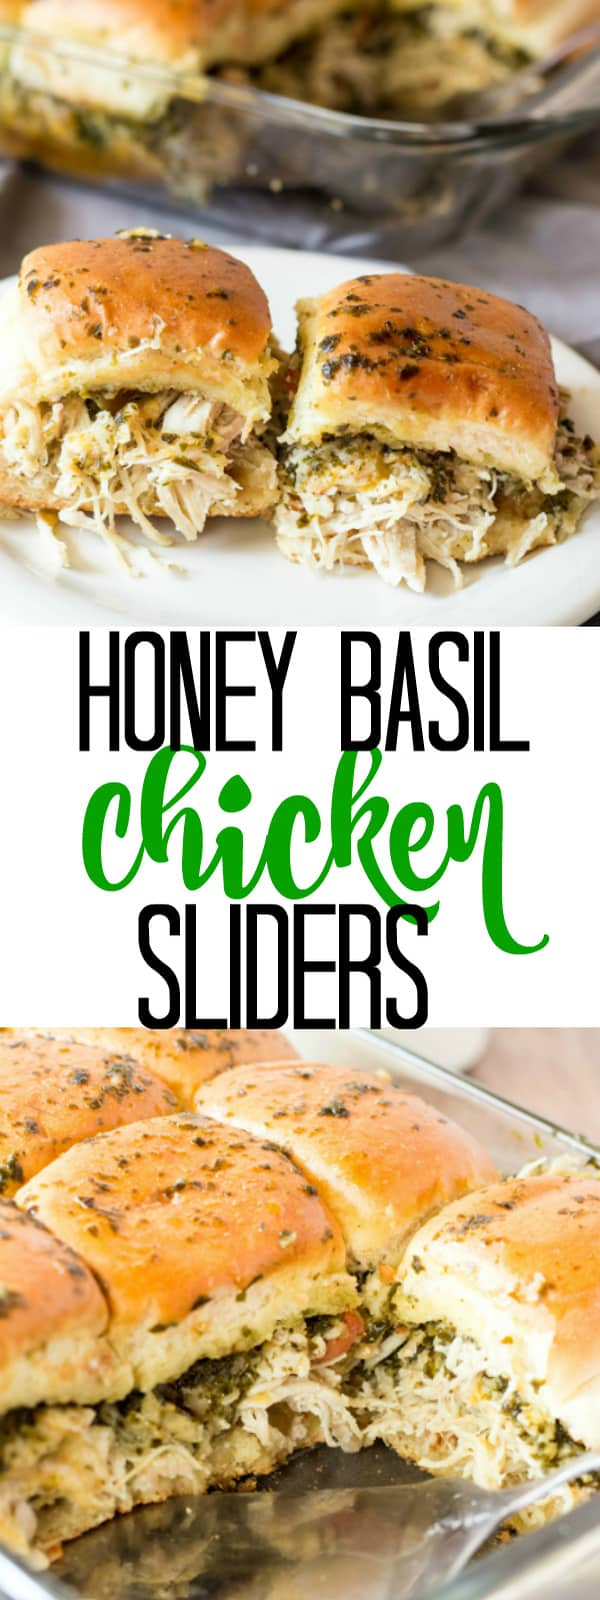 Honey Basil Chicken Sliders